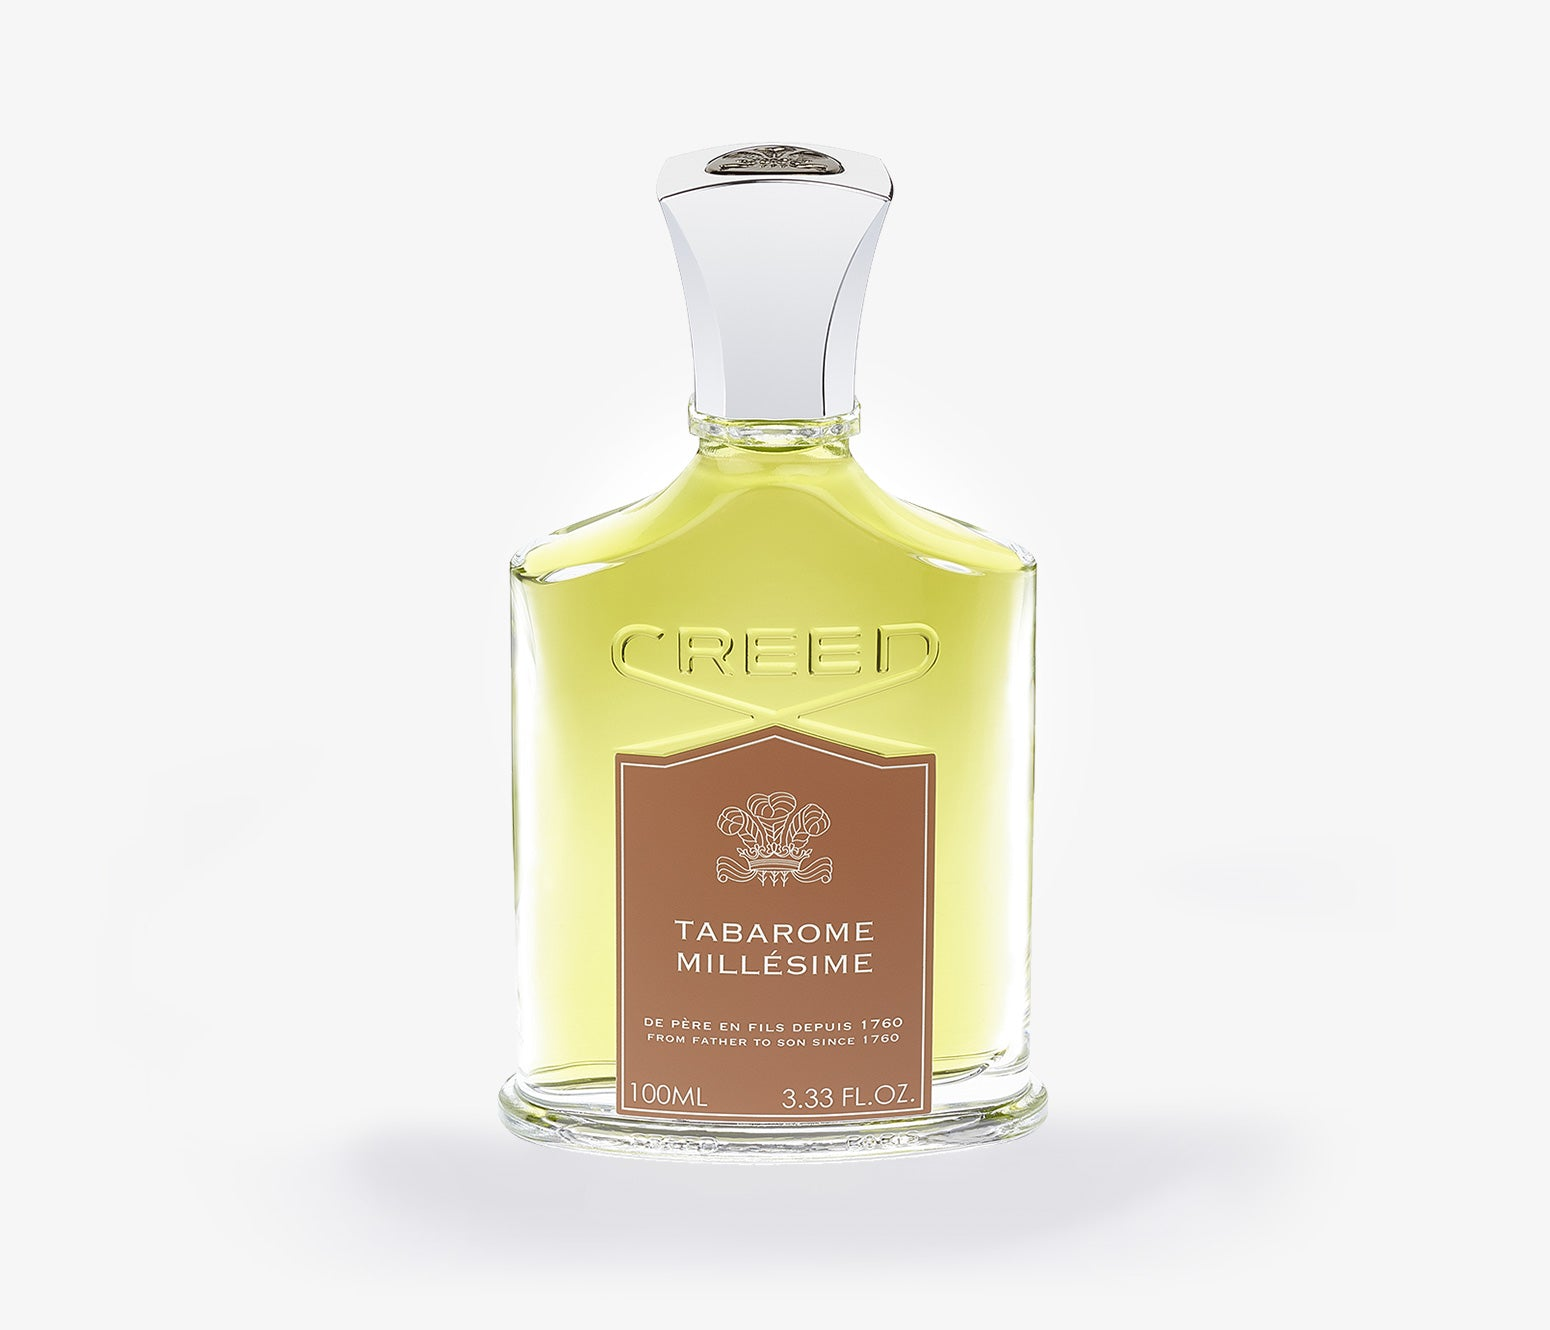 Creed - Tabarome - 50ml - '10001266 - Product Image - Fragrance - Les Senteurs